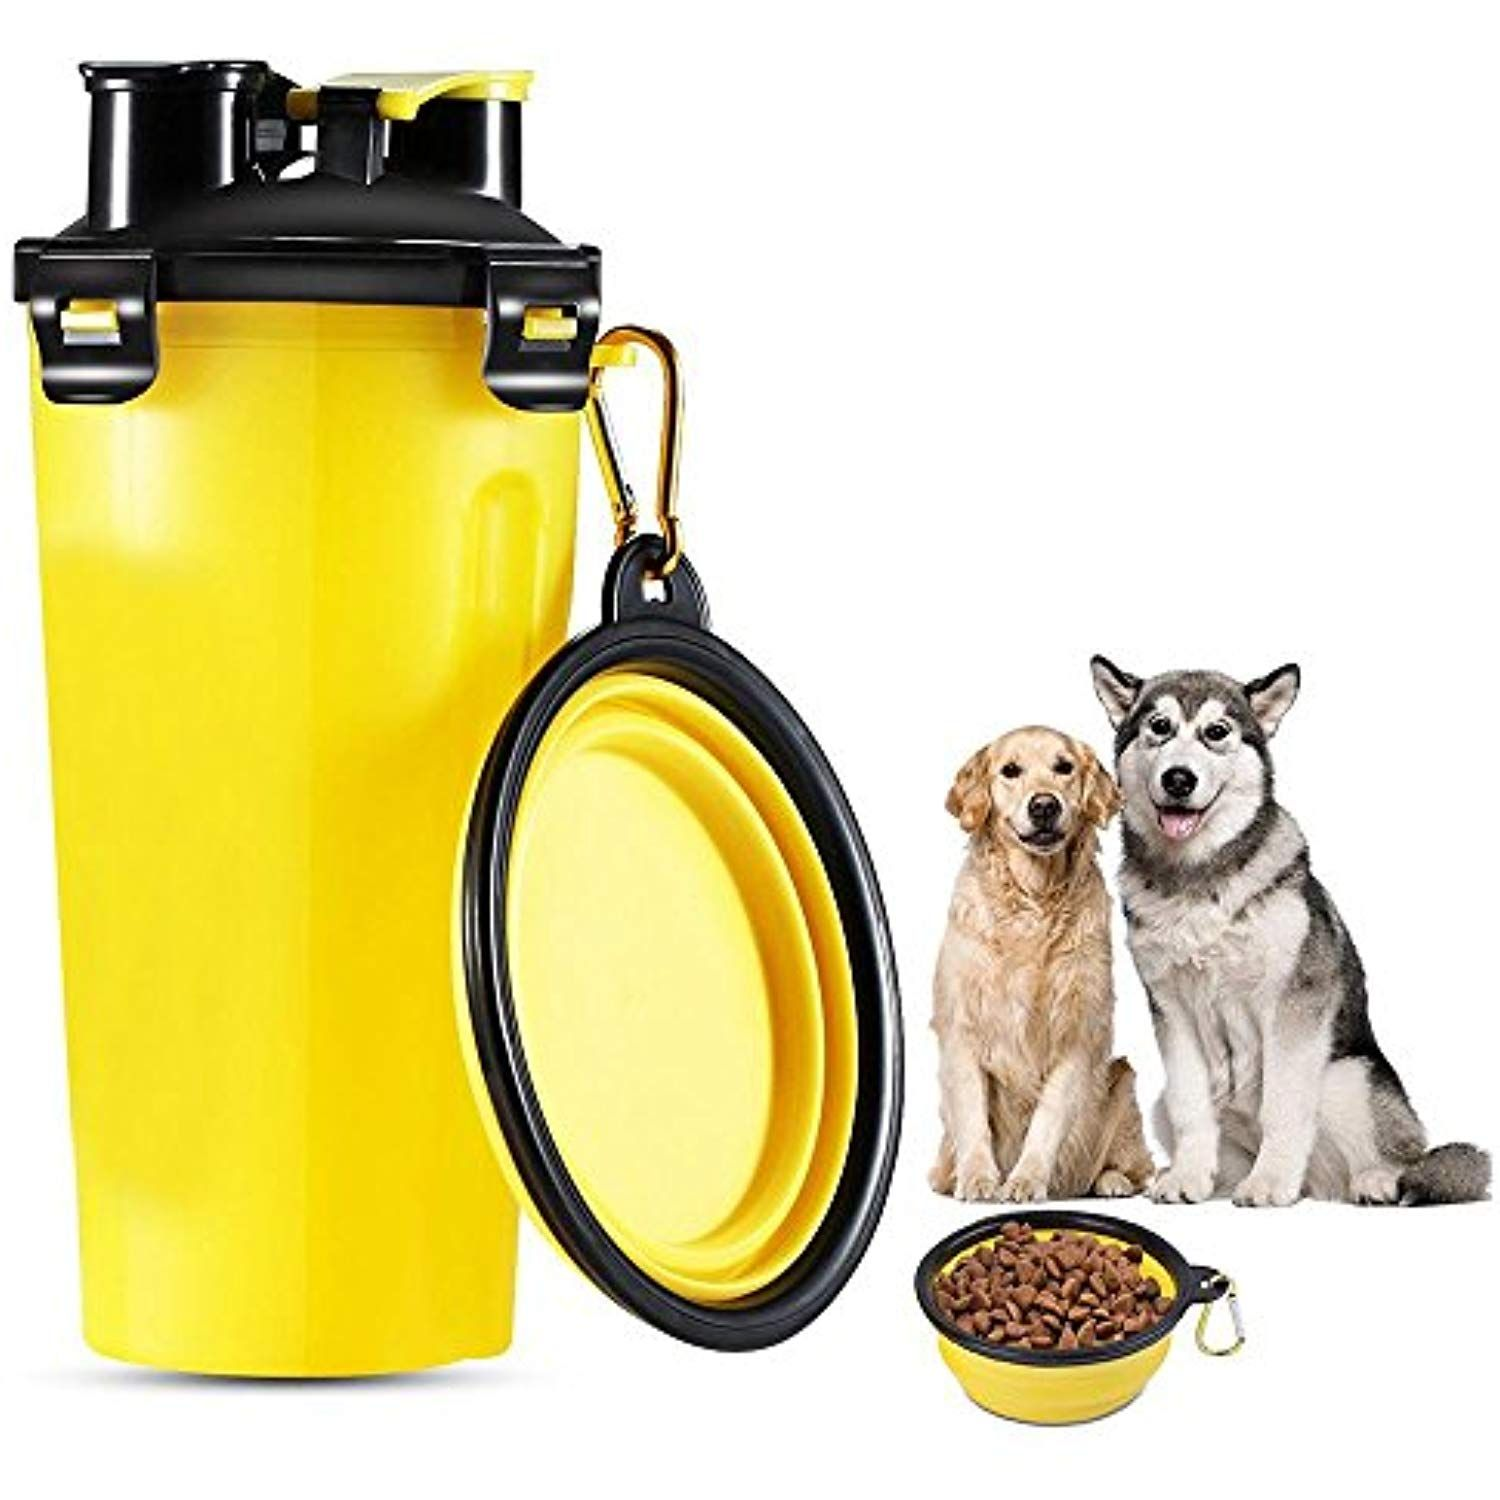 Aolvo 2 In 1 Pet Portable Food And Water Feeding Bottle Travel Pet Food Storage Container With Collap Pet Food